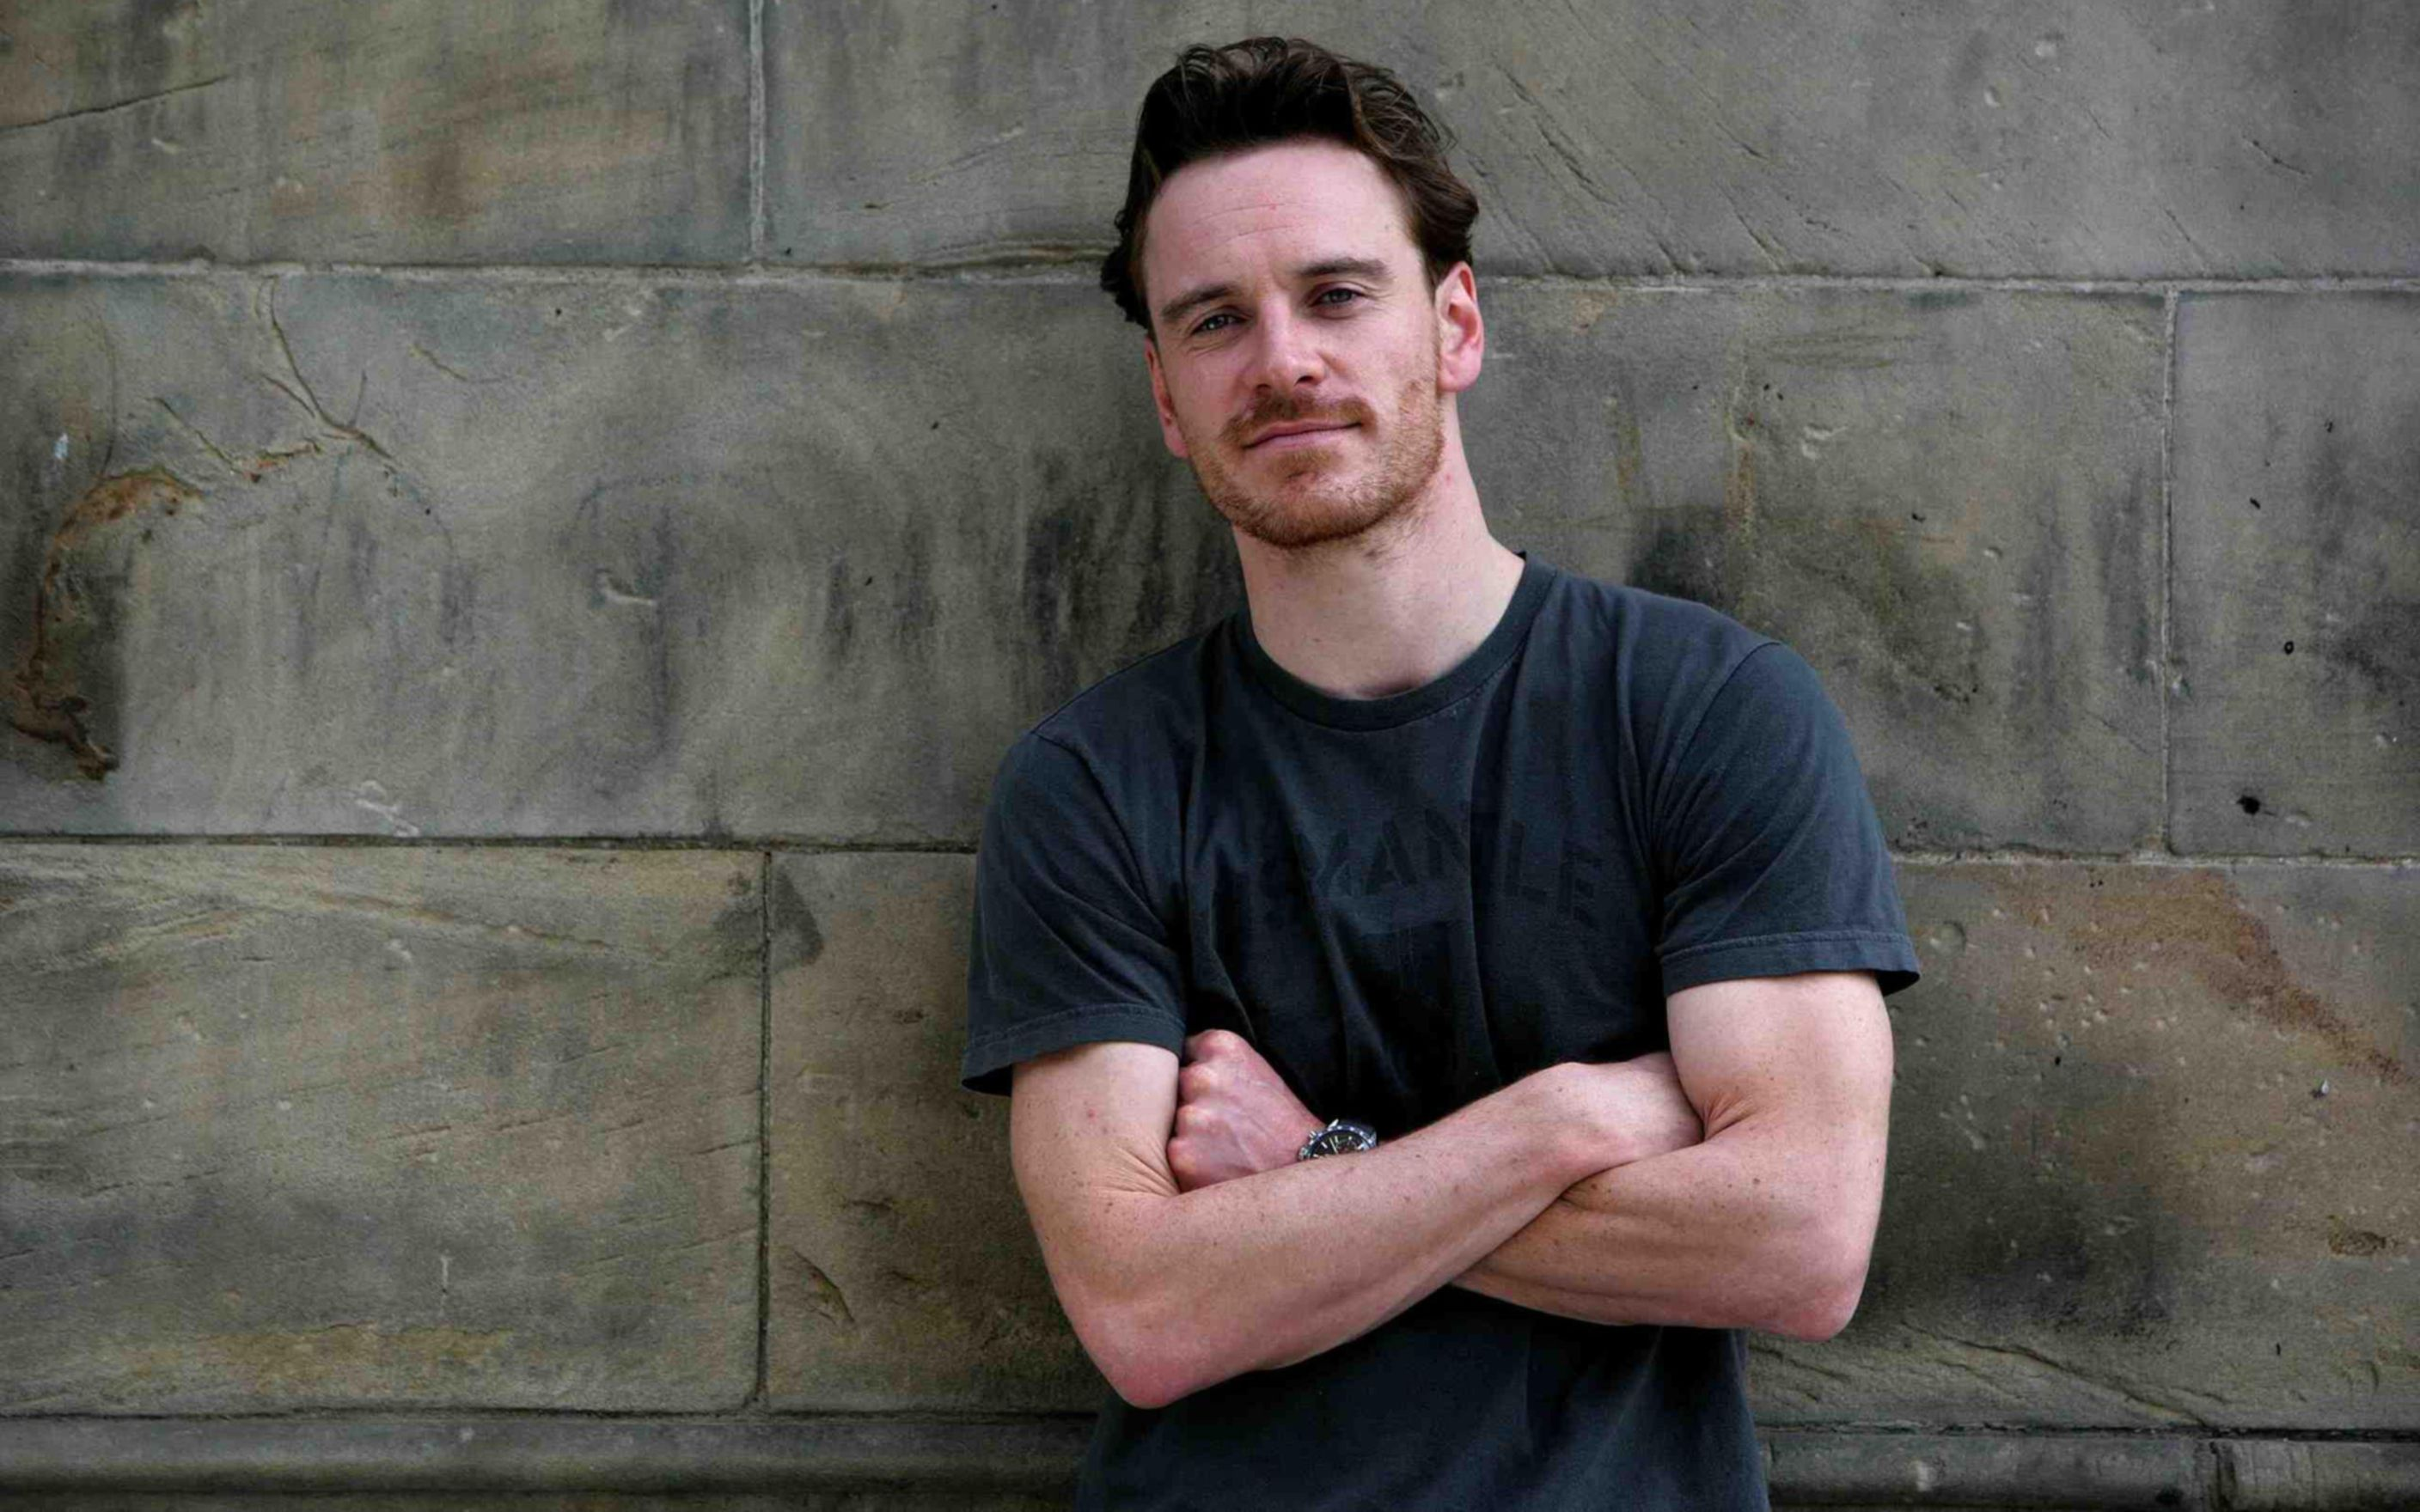 Download free HD Michael Fassbender HD Wallpaper, image